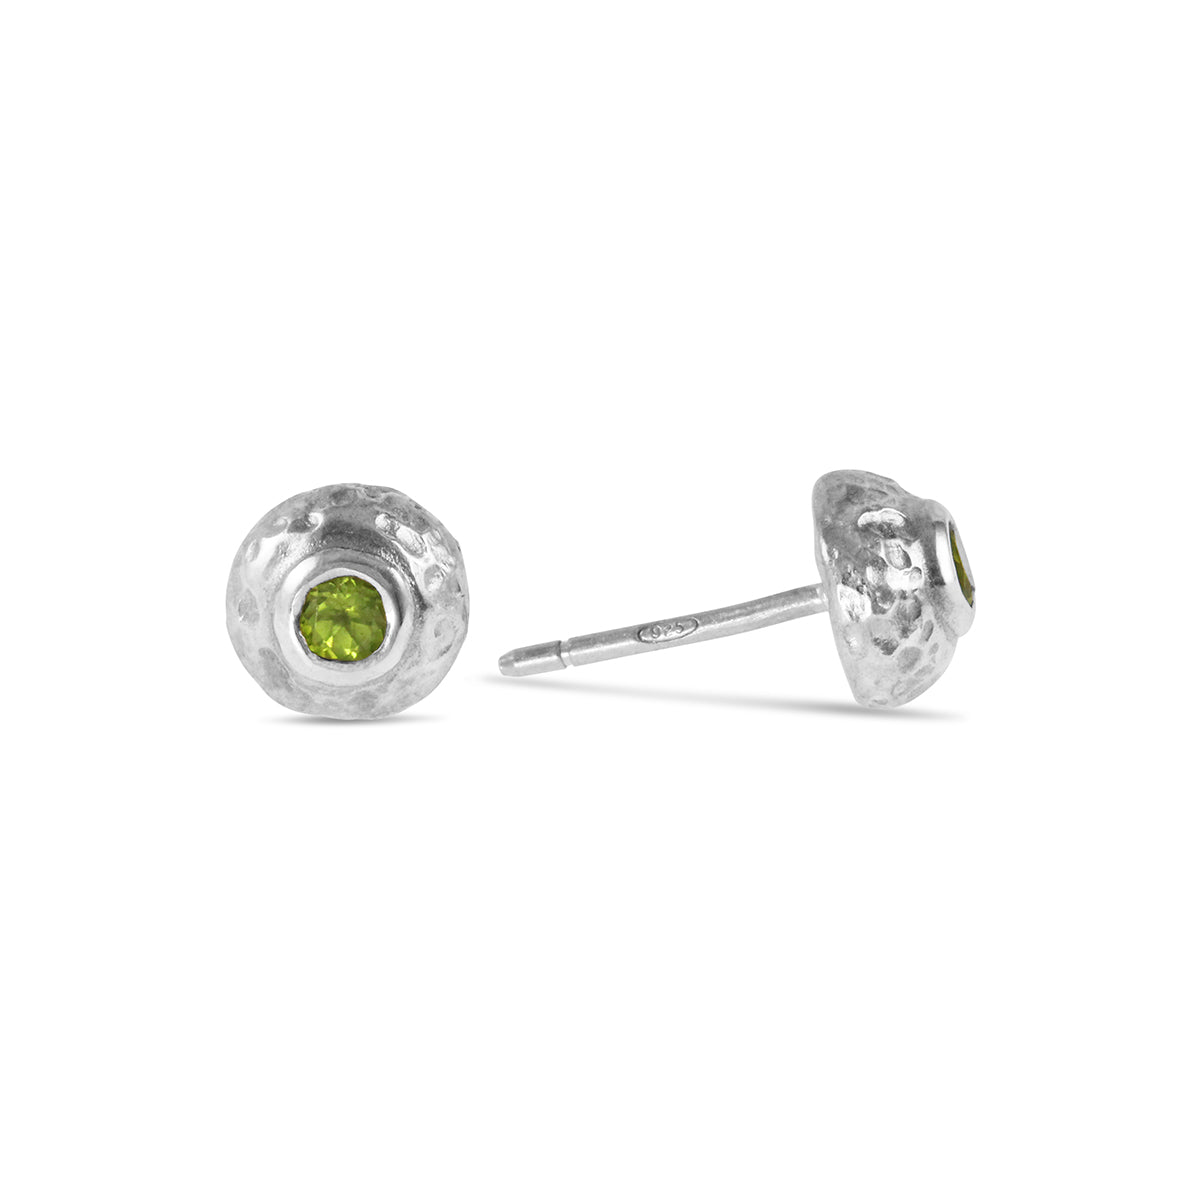 Sterling silver rustic style stud earring set with a peridot. - Paul Magen